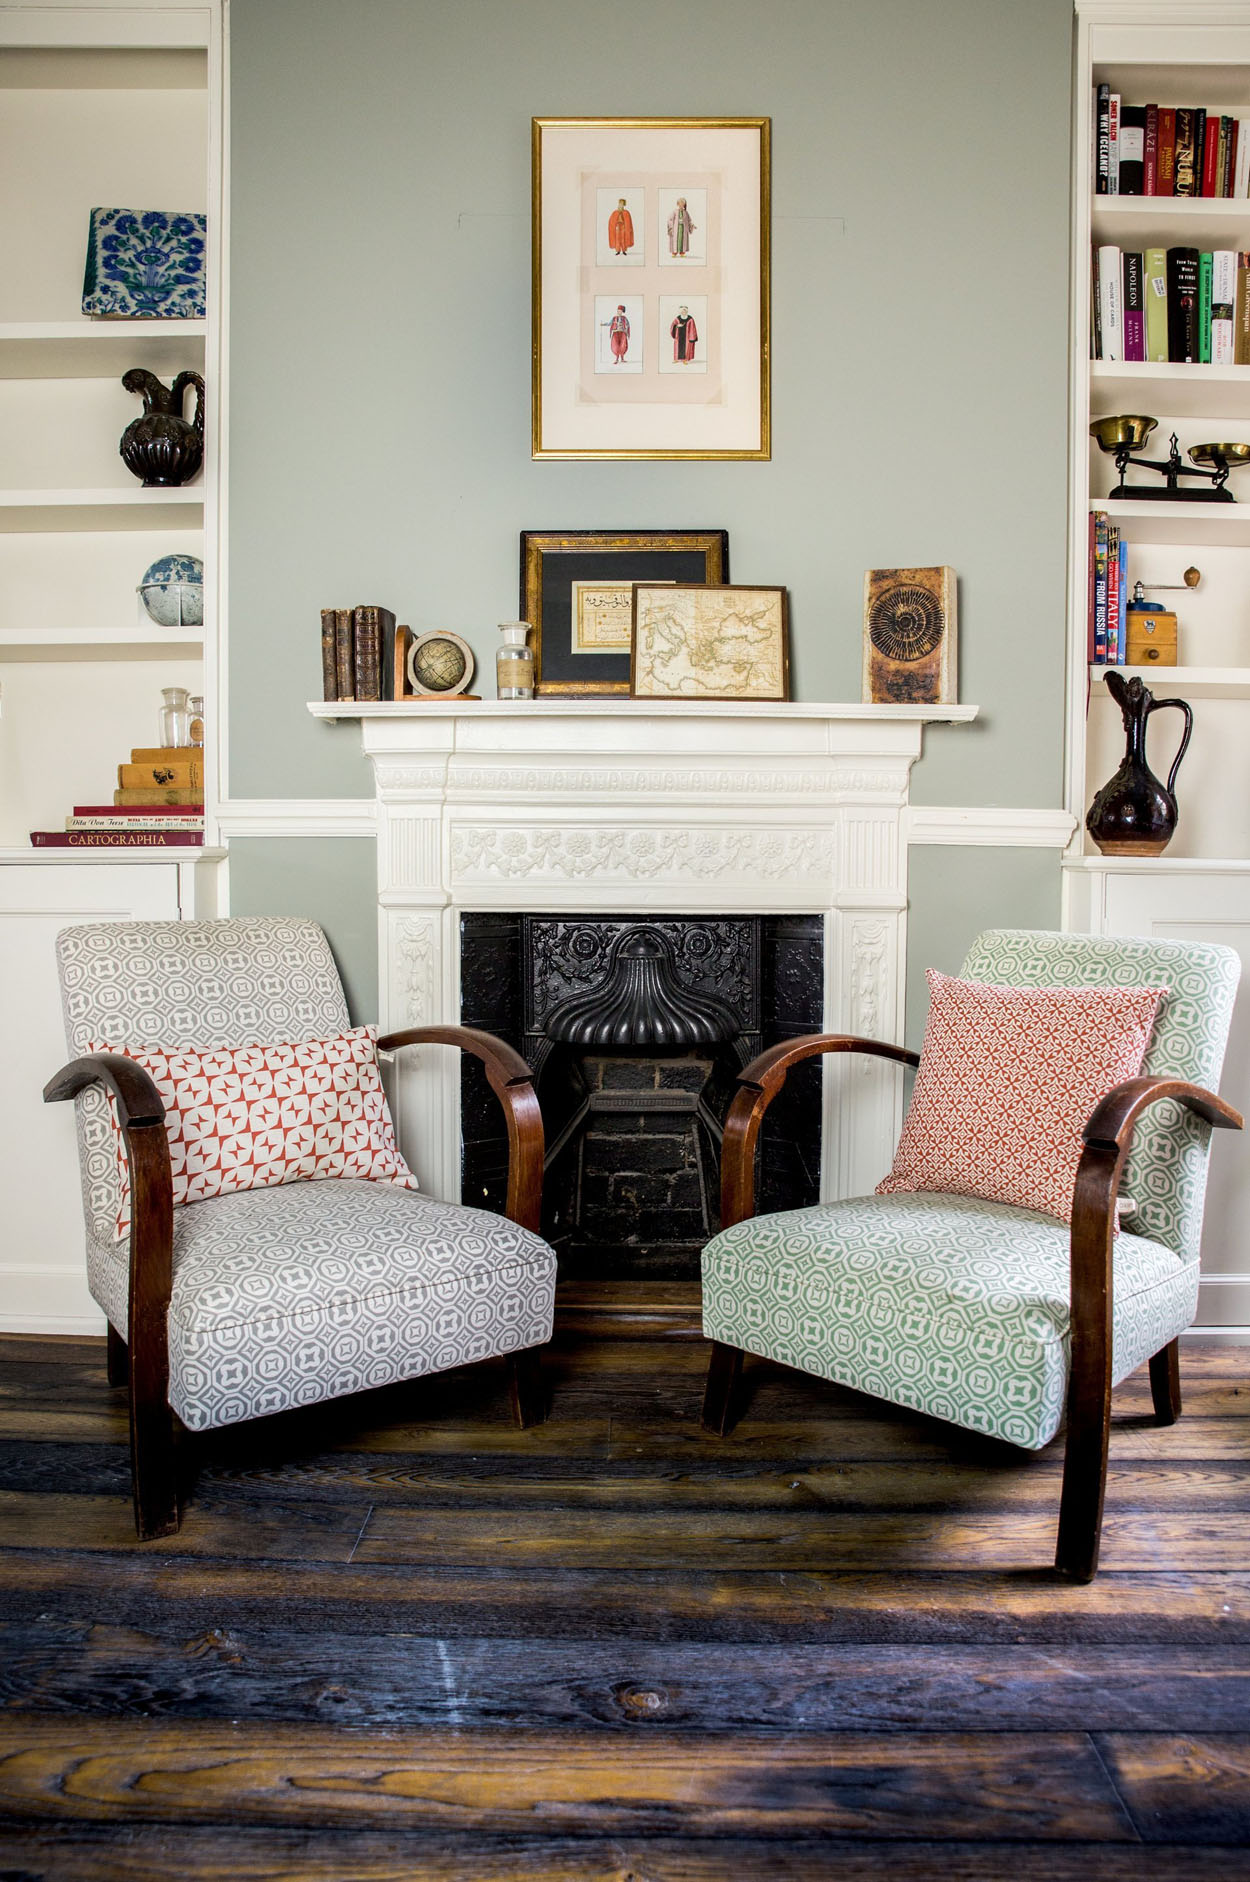 Pair of 1030's chairs covered in retro fabrics